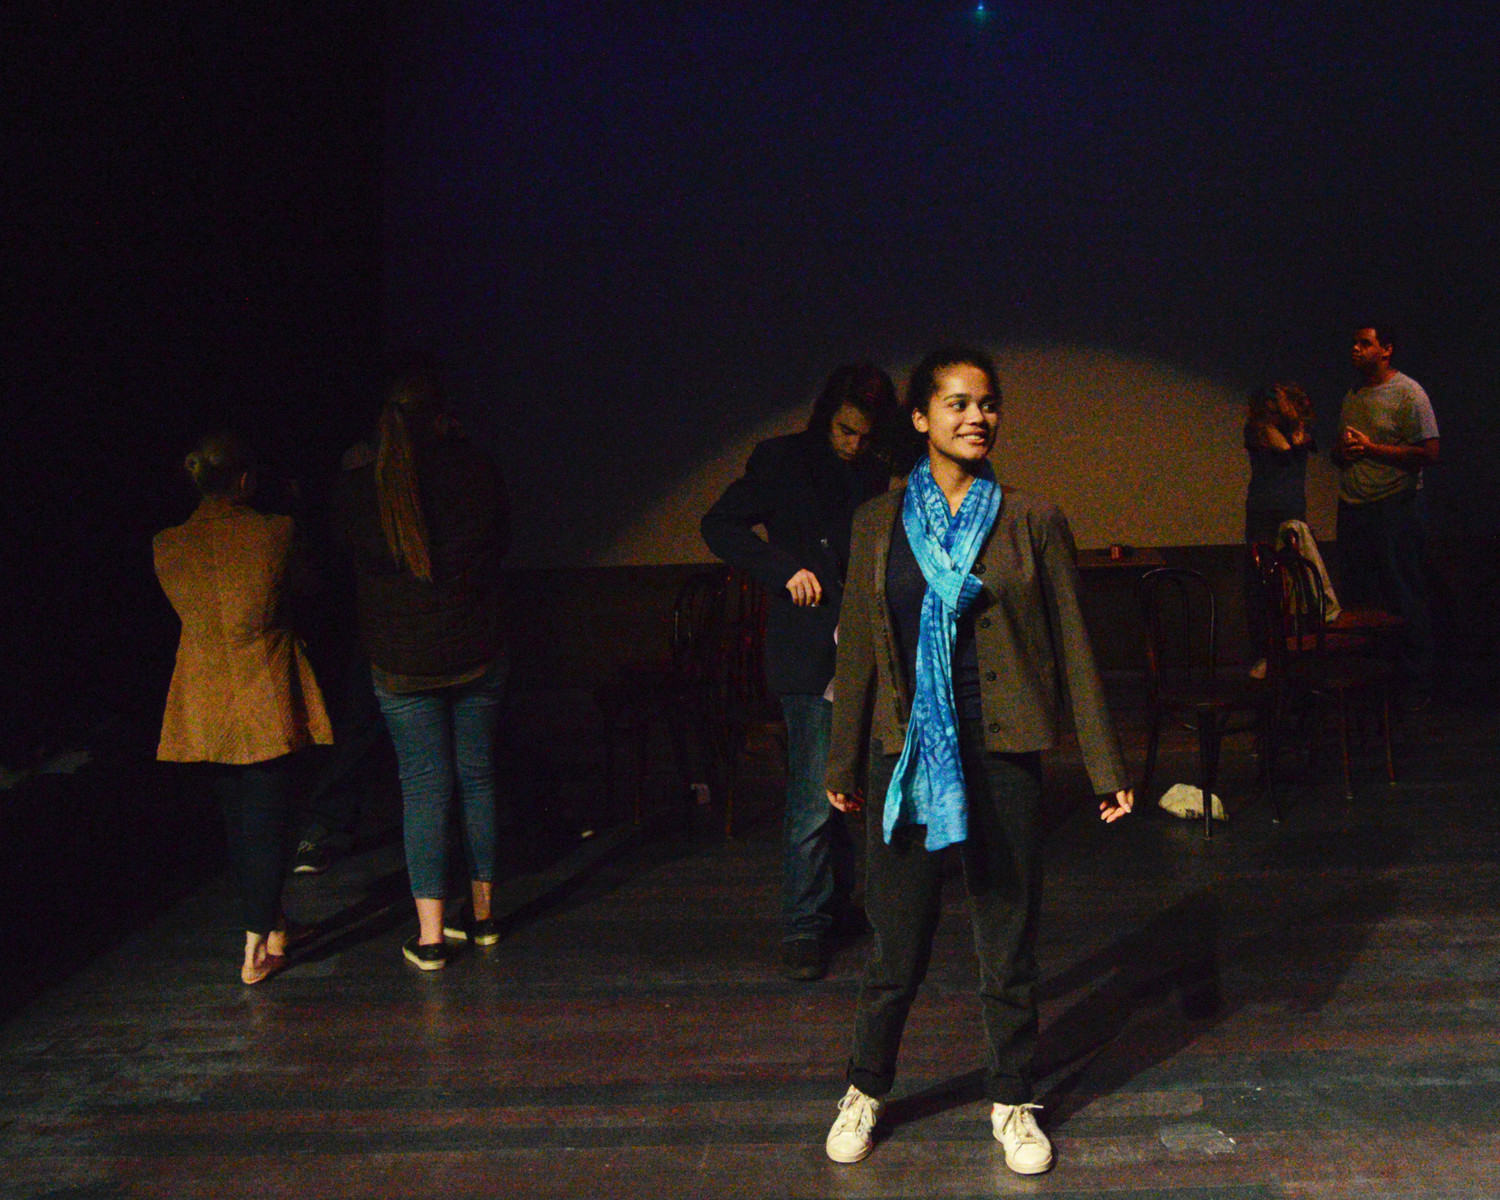 BWW Review: THE LARAMIE PROJECT at Commonwealth Theatre Center